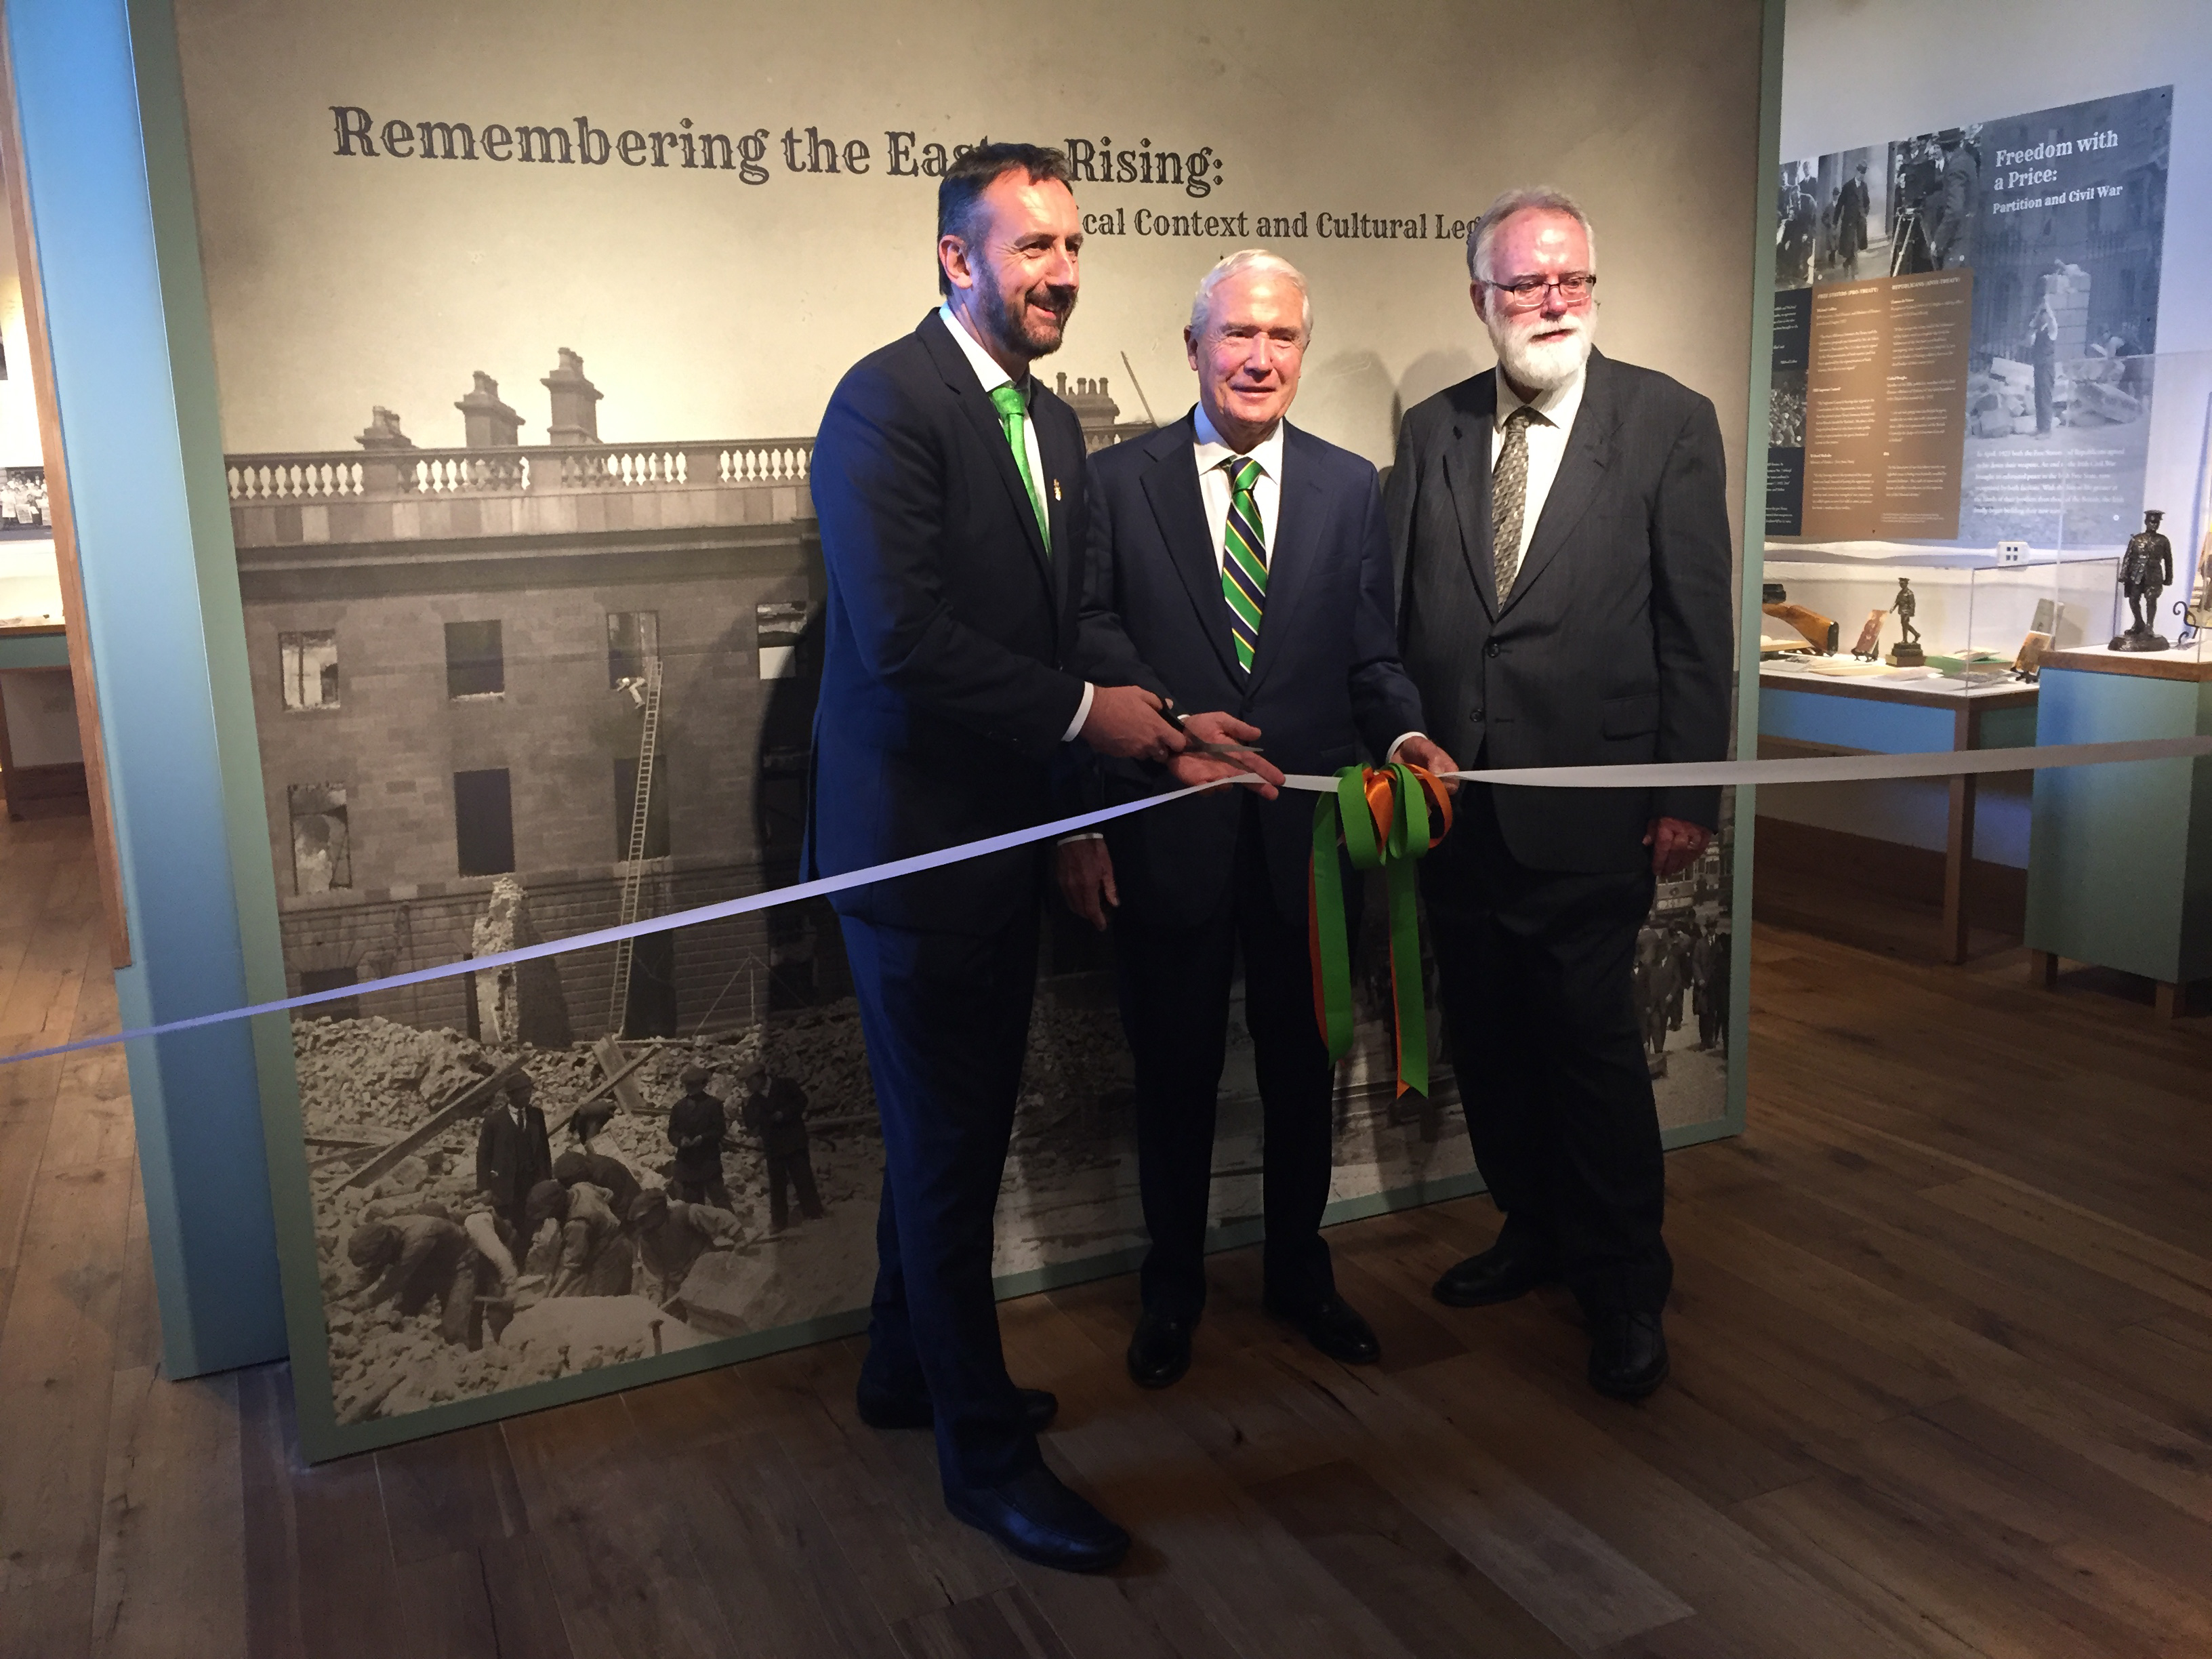 Consul General Philip Grant, ICLF Treasurer Norman McClelland, and ICLF President Paul Ahern at the 1916 Commemoration Exhibit Grand Opening in October of 2015. (Photo: Caroline Woodiel)